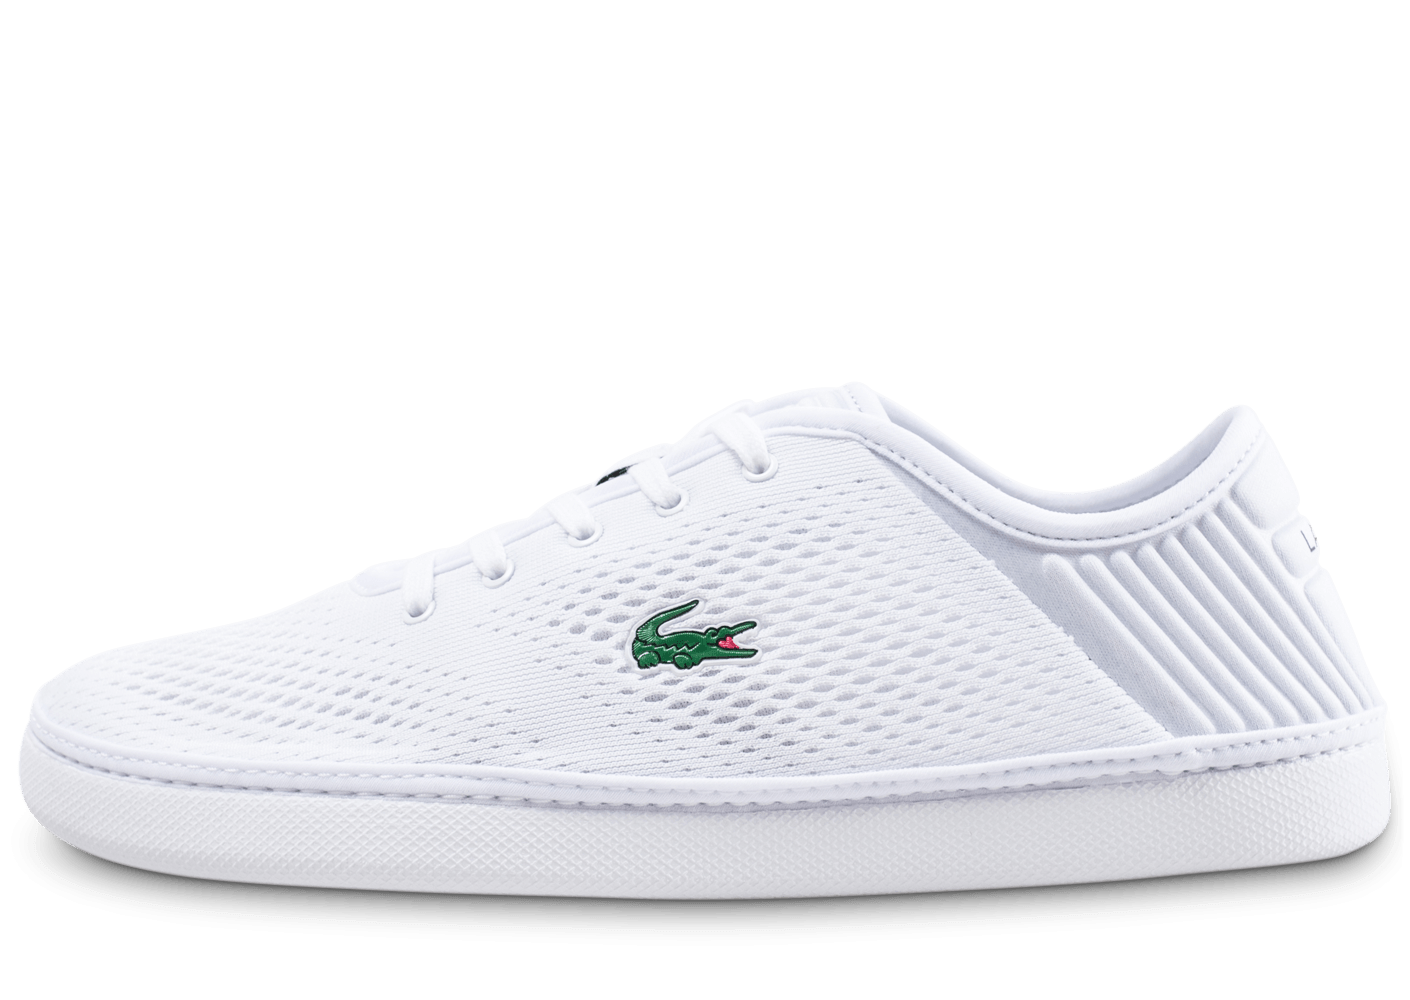 Lacoste L Baskets ydro Blanche Chaussures Homme Chausport rrdPqvwnxZ